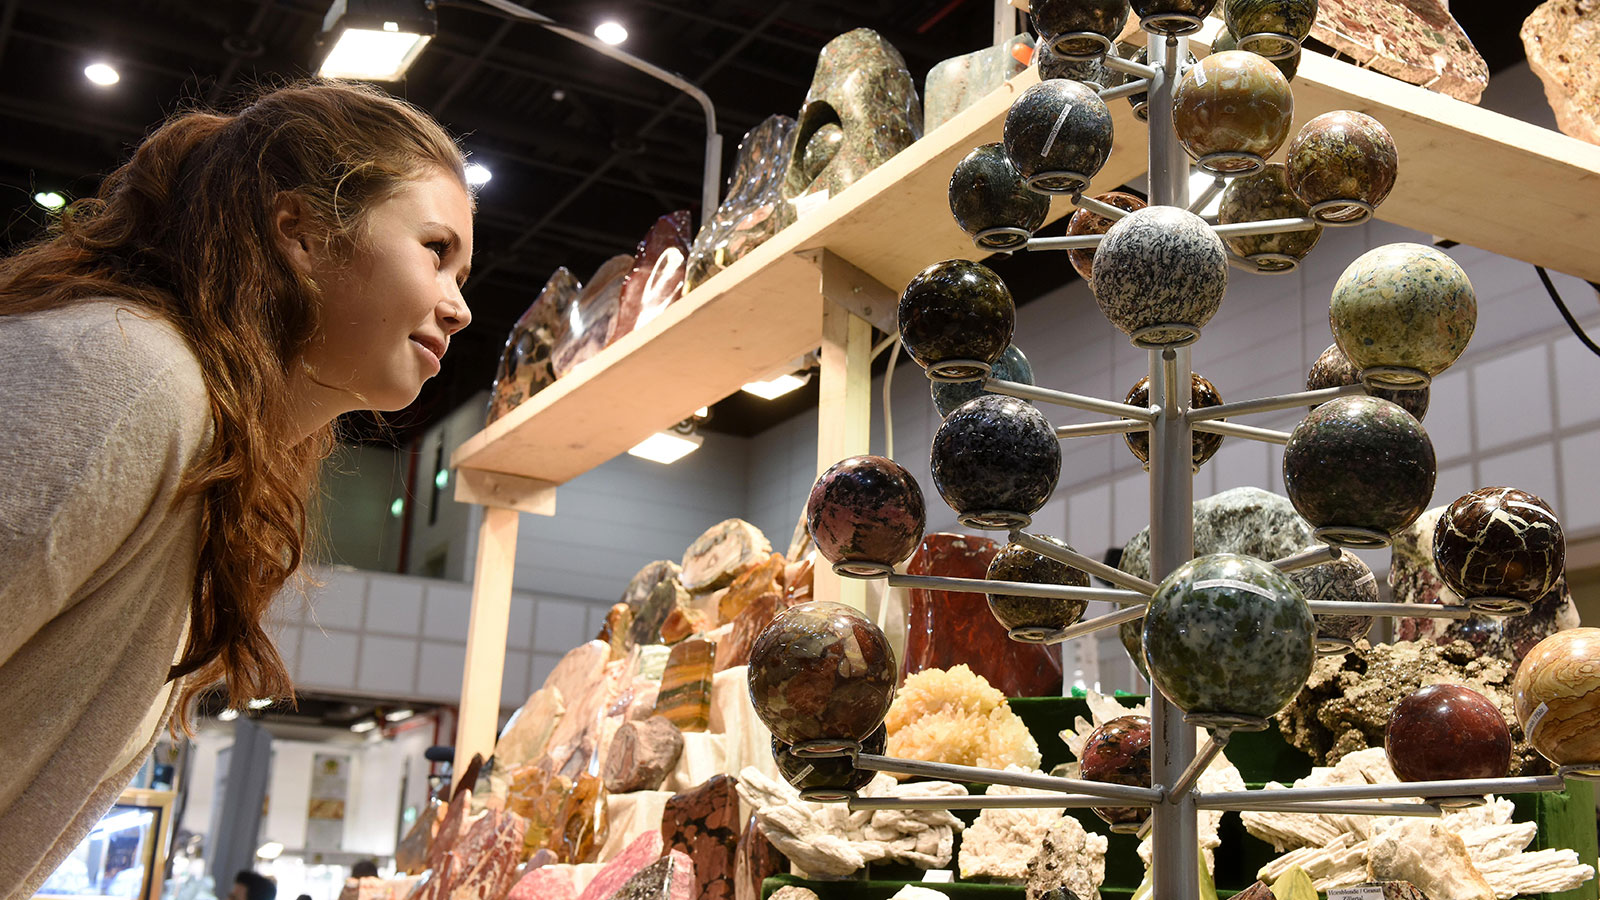 A female visitor standing in front of minerals at the Mineralien Hamburg trade show in the Hamburg exhibition halls